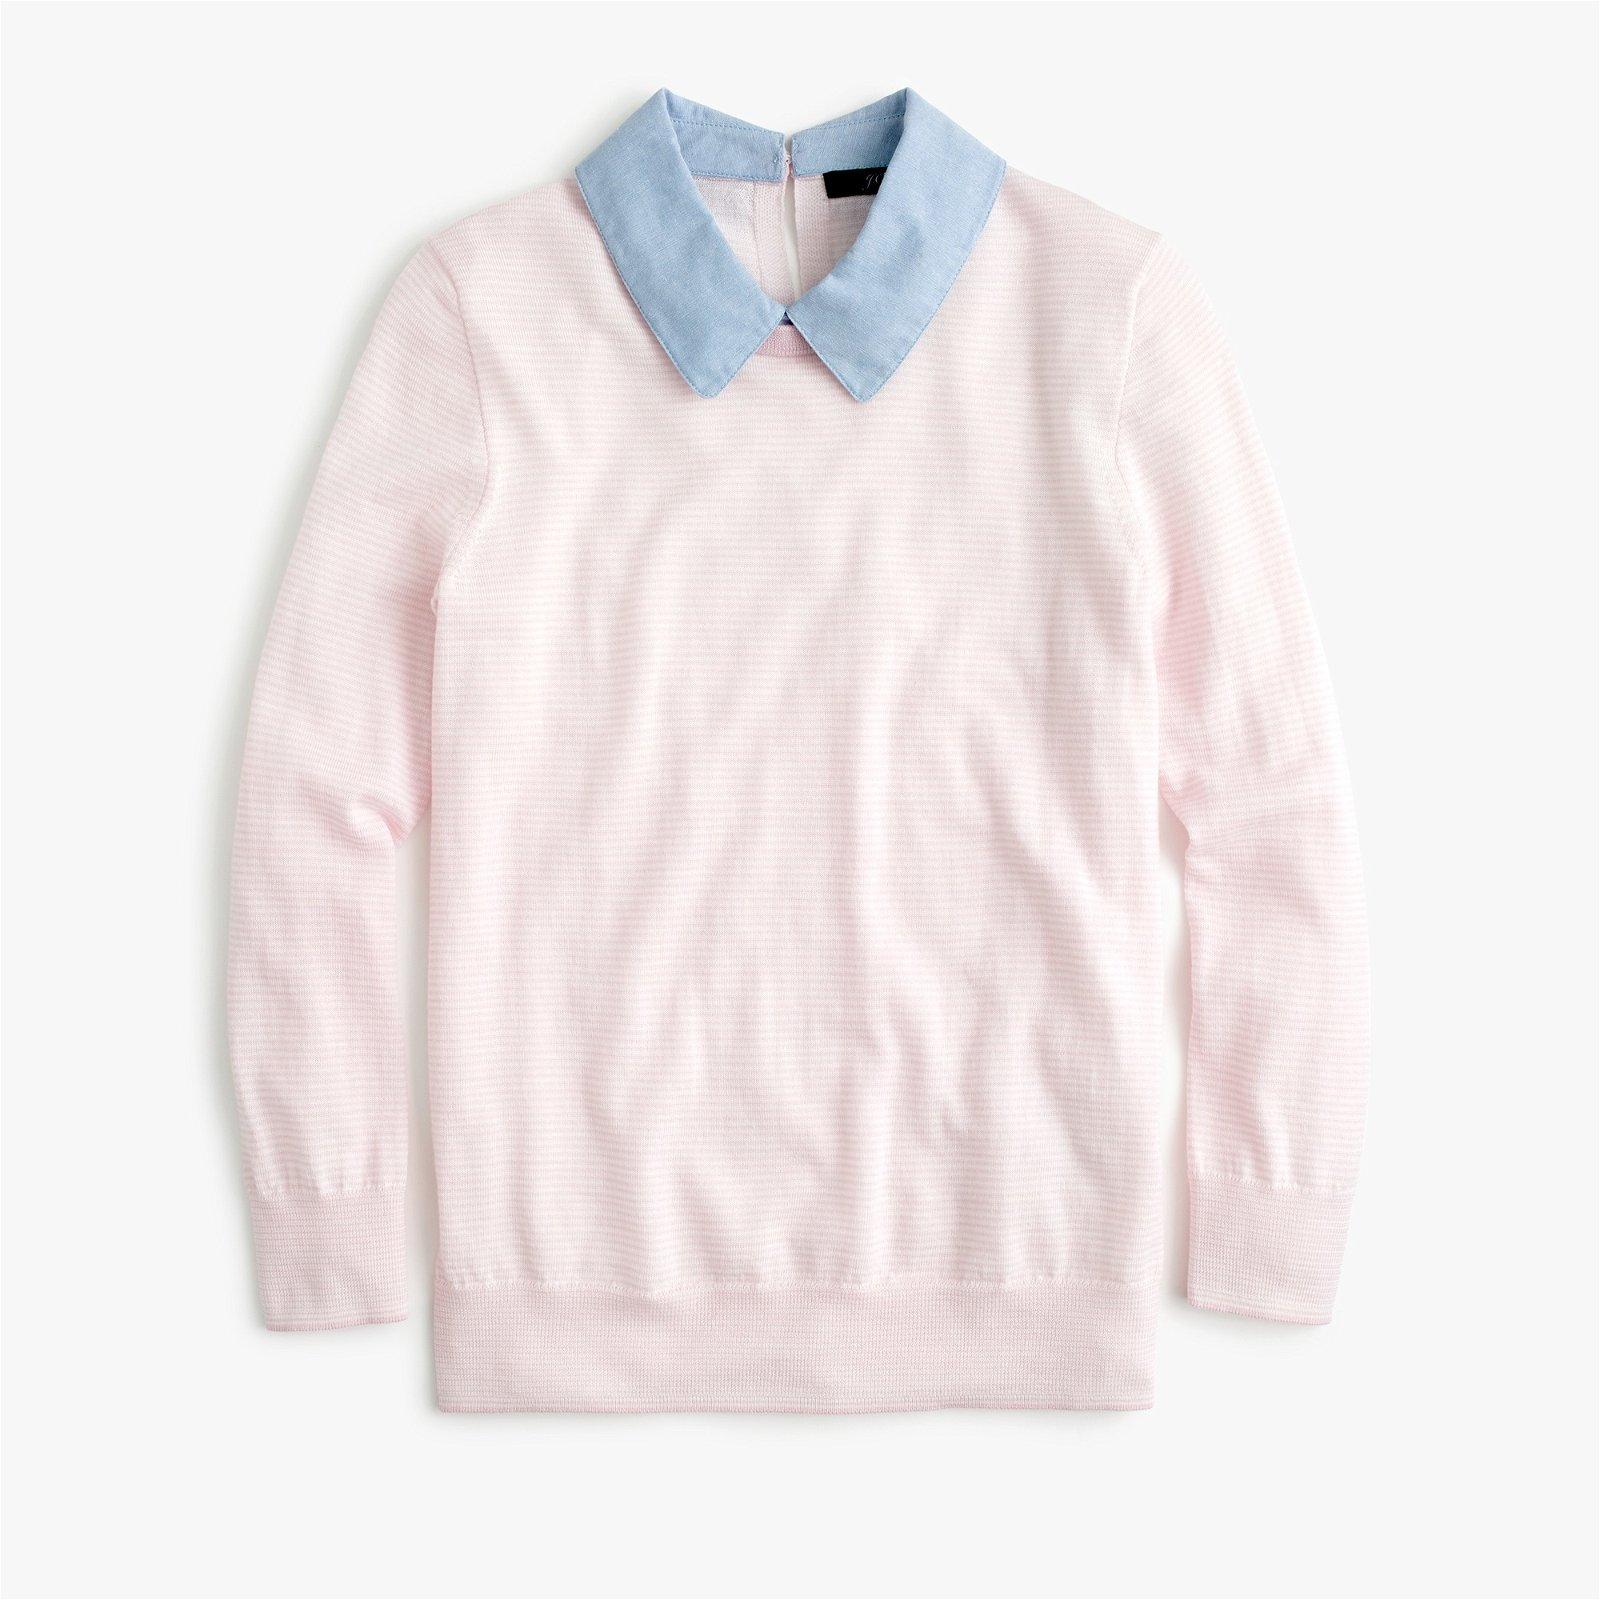 Tippi sweater with chambray collar